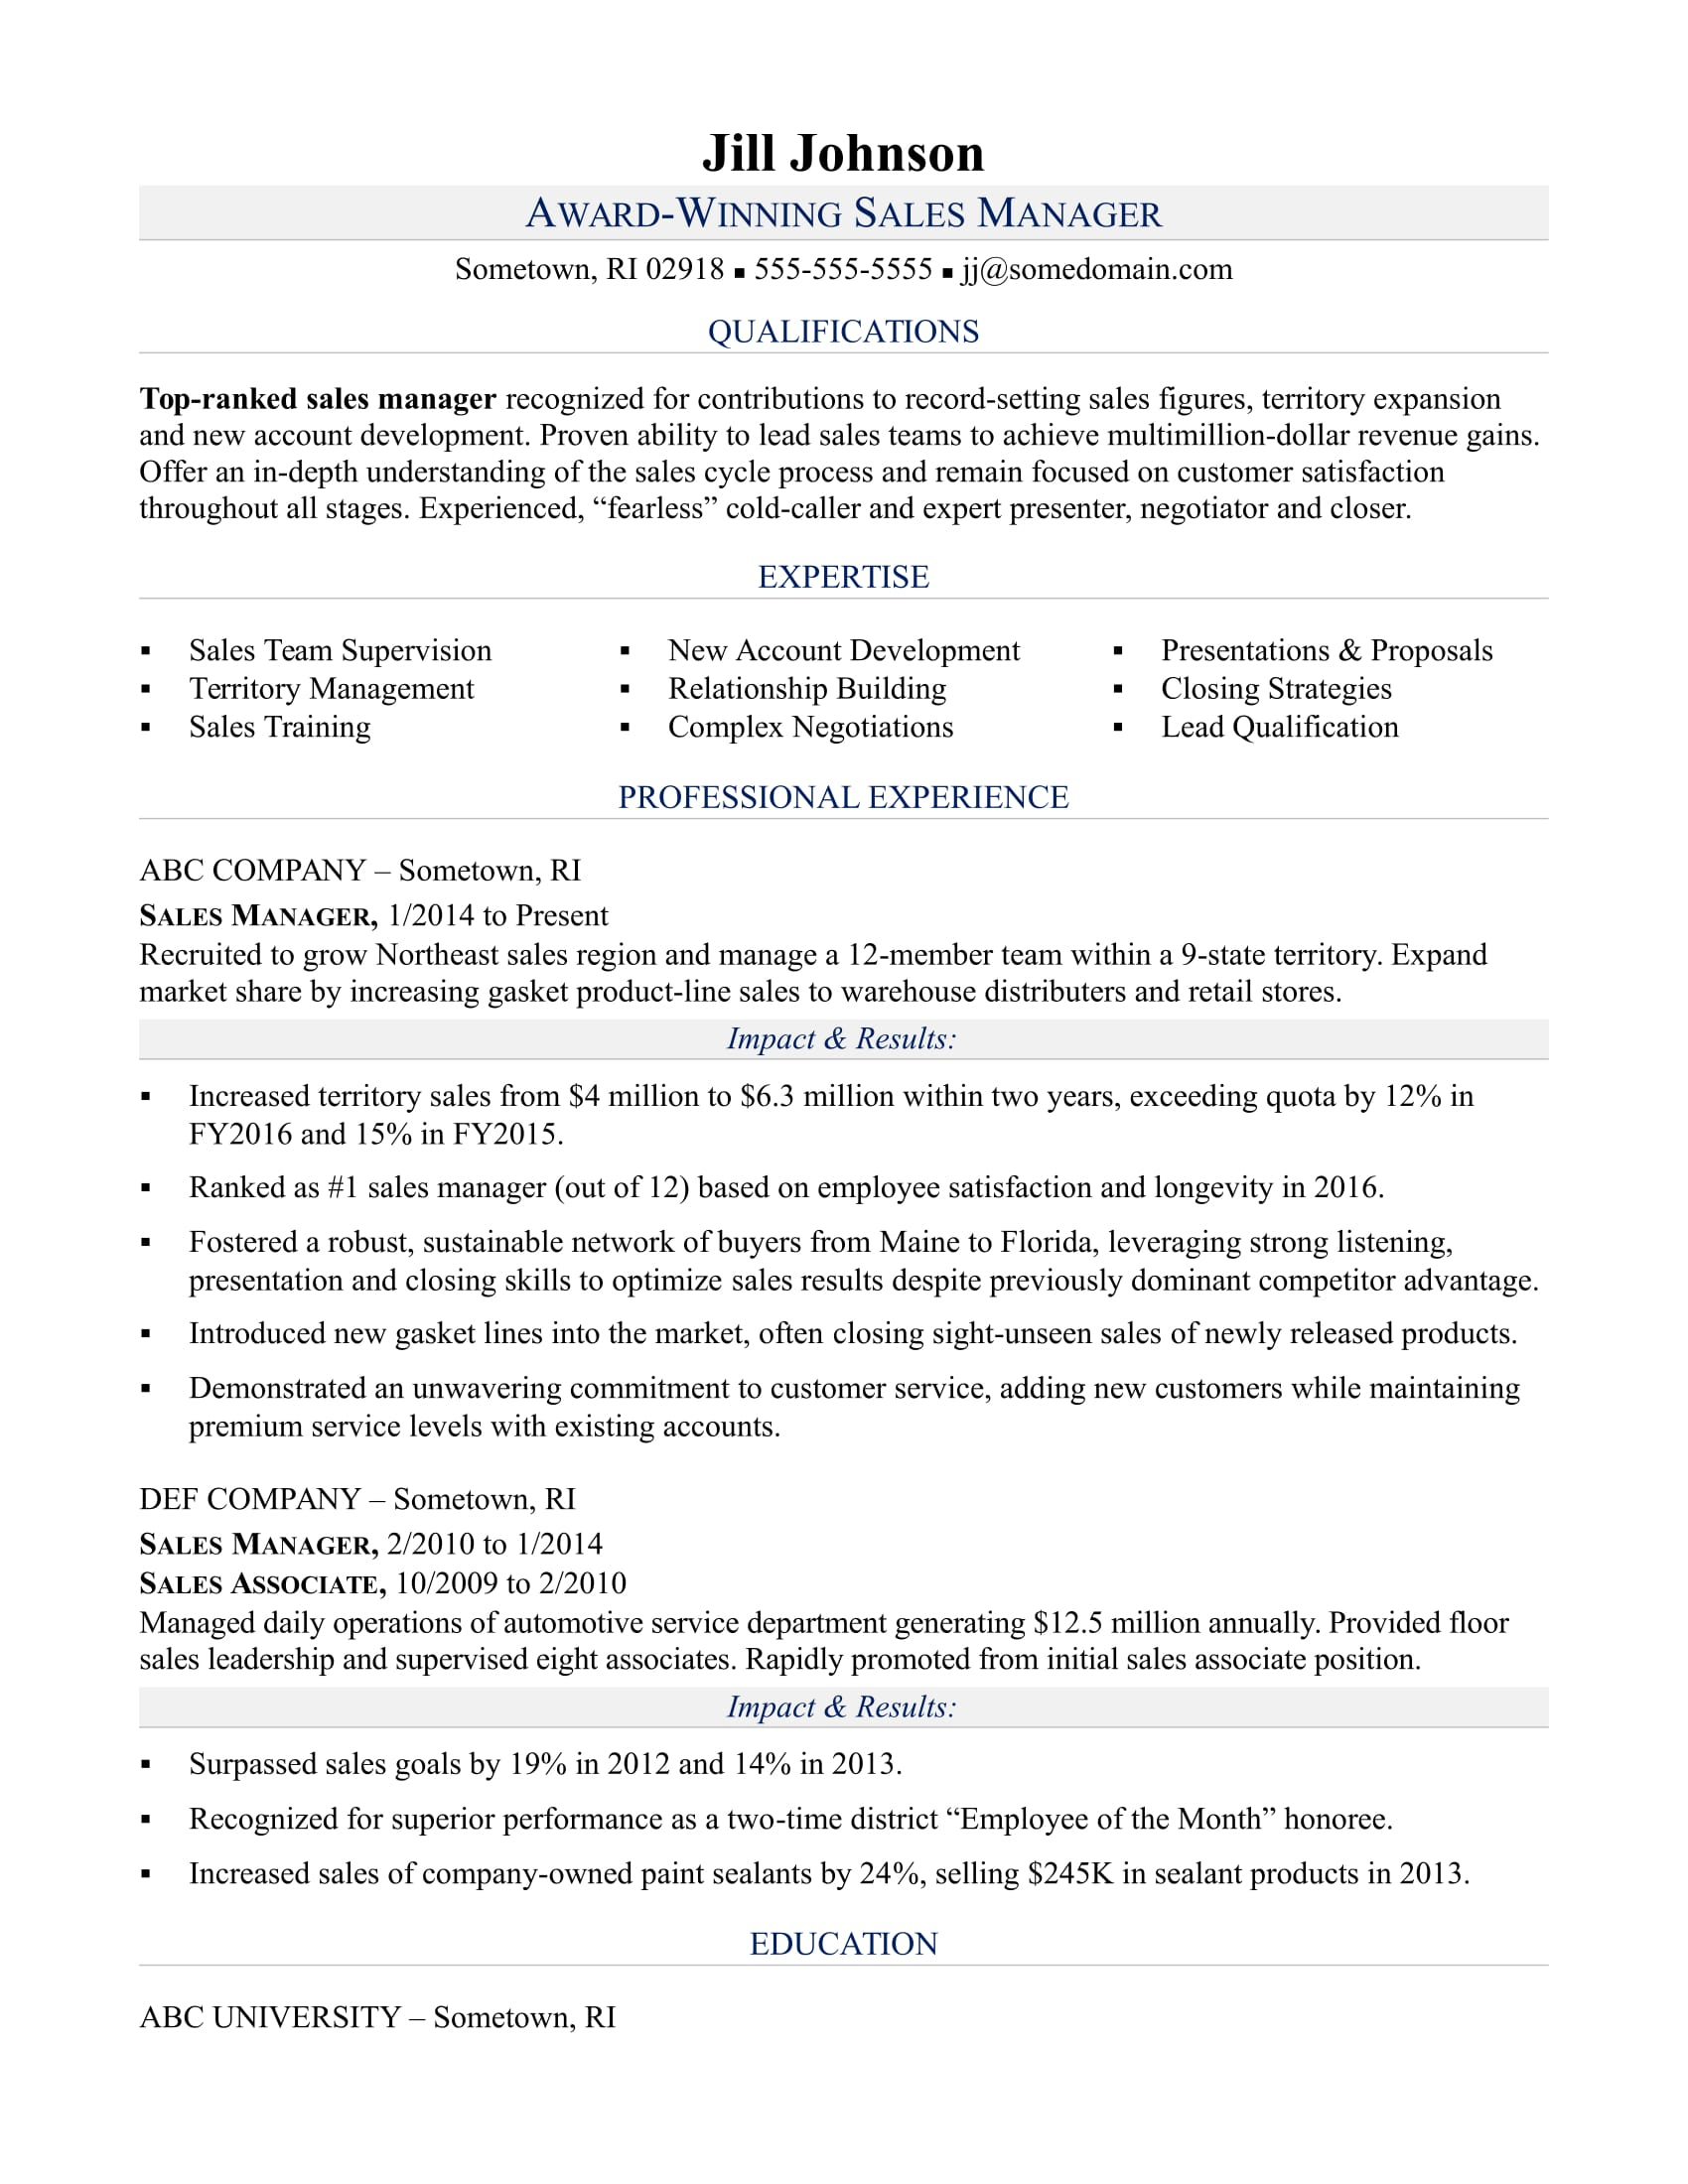 Sample Resume For A Sales Manager  Sales Manager Resume Objective